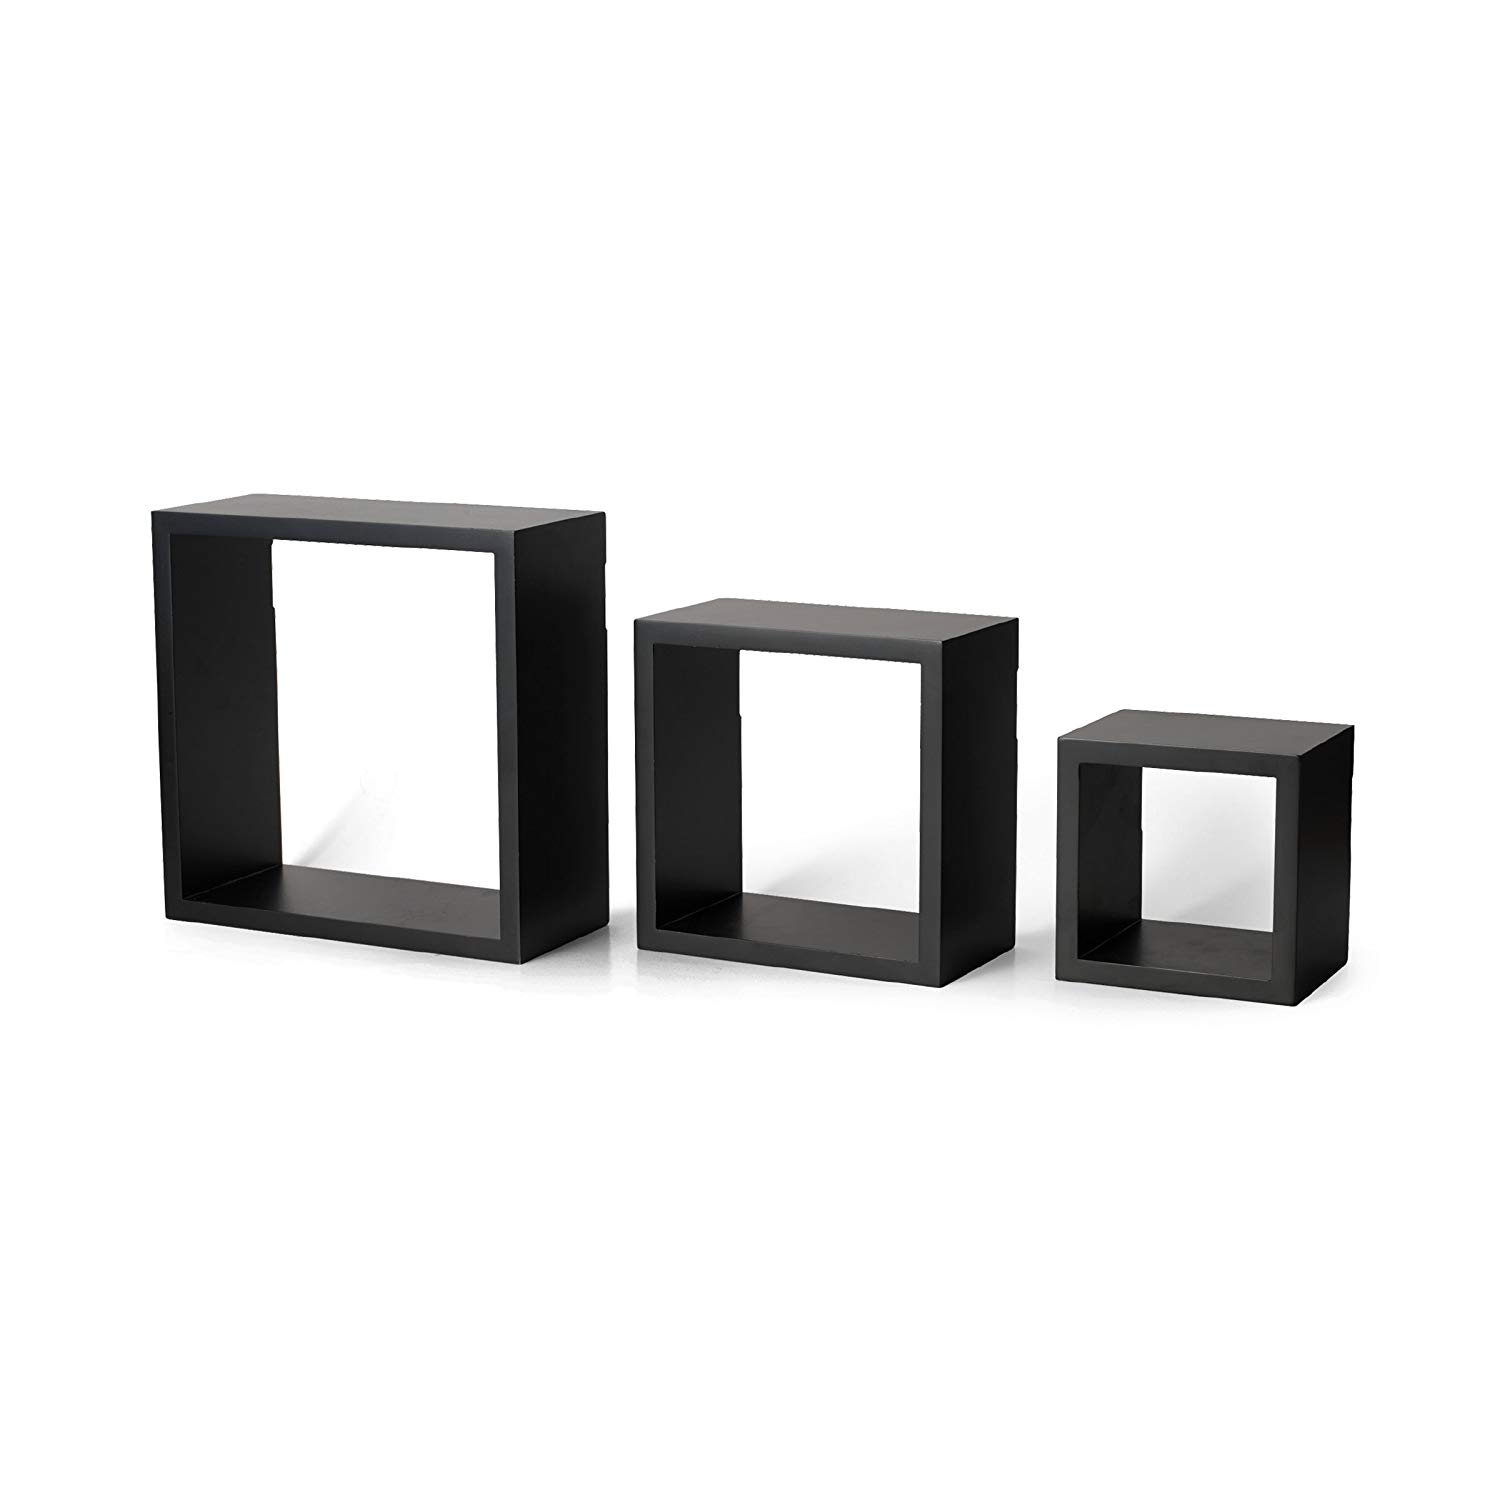 melannco floating wall mount square cube shelves set shelf black home kitchen homebase units ikea shoe cupboard hemnes inch deep folding island table railway sleeper mantelpiece